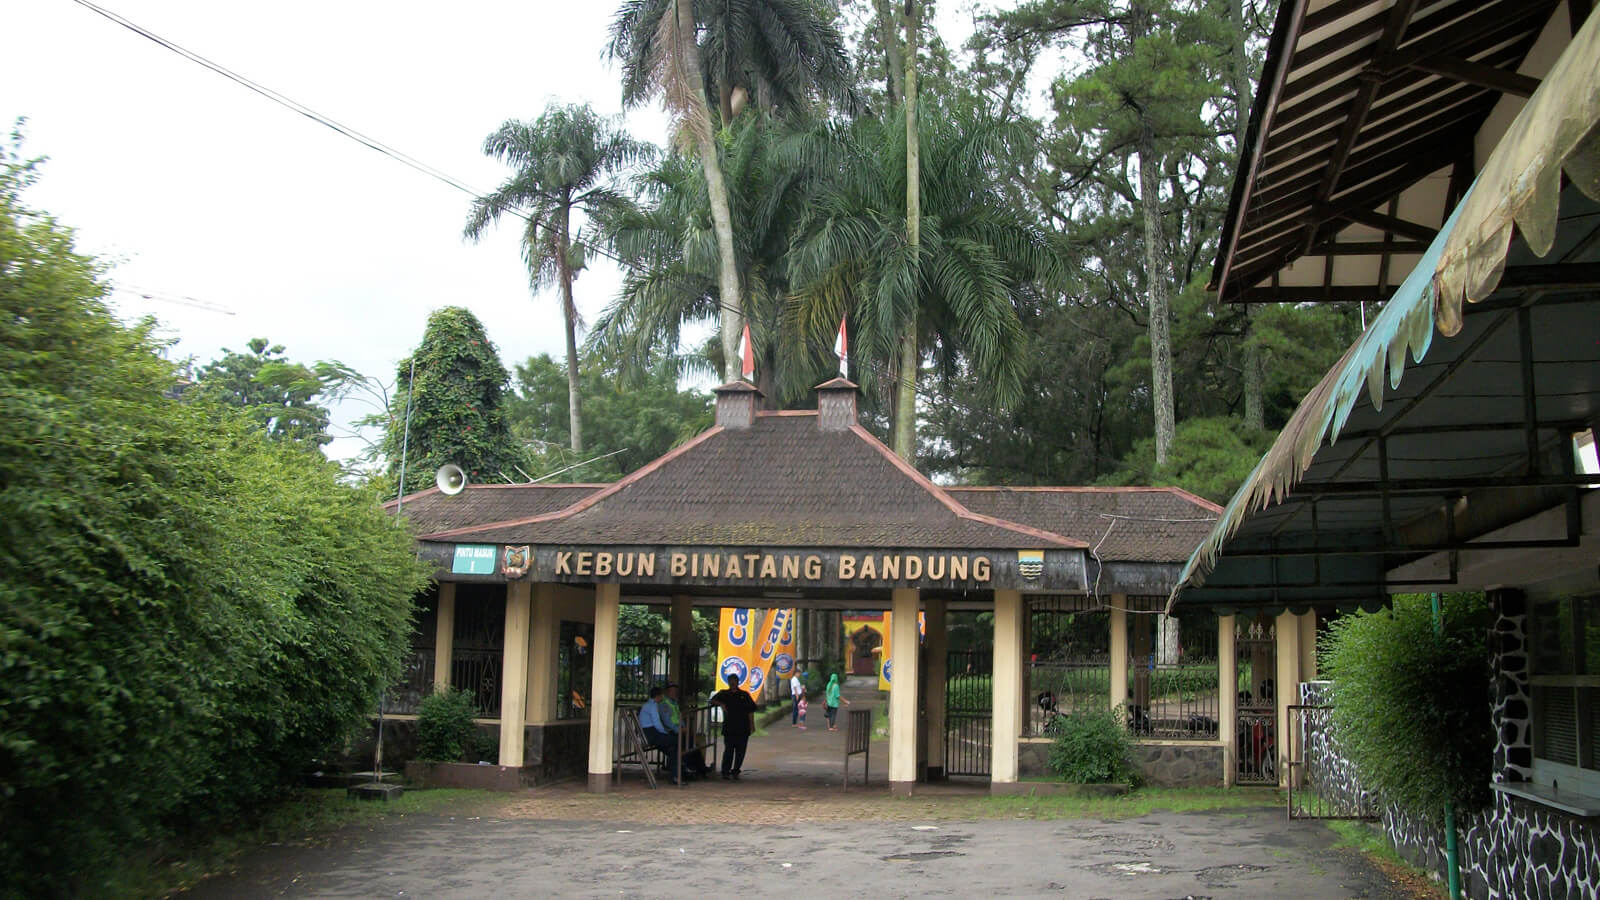 Kebun Binatang Bandung: The Most Depressing Zoo Ever? - The HoliDaze